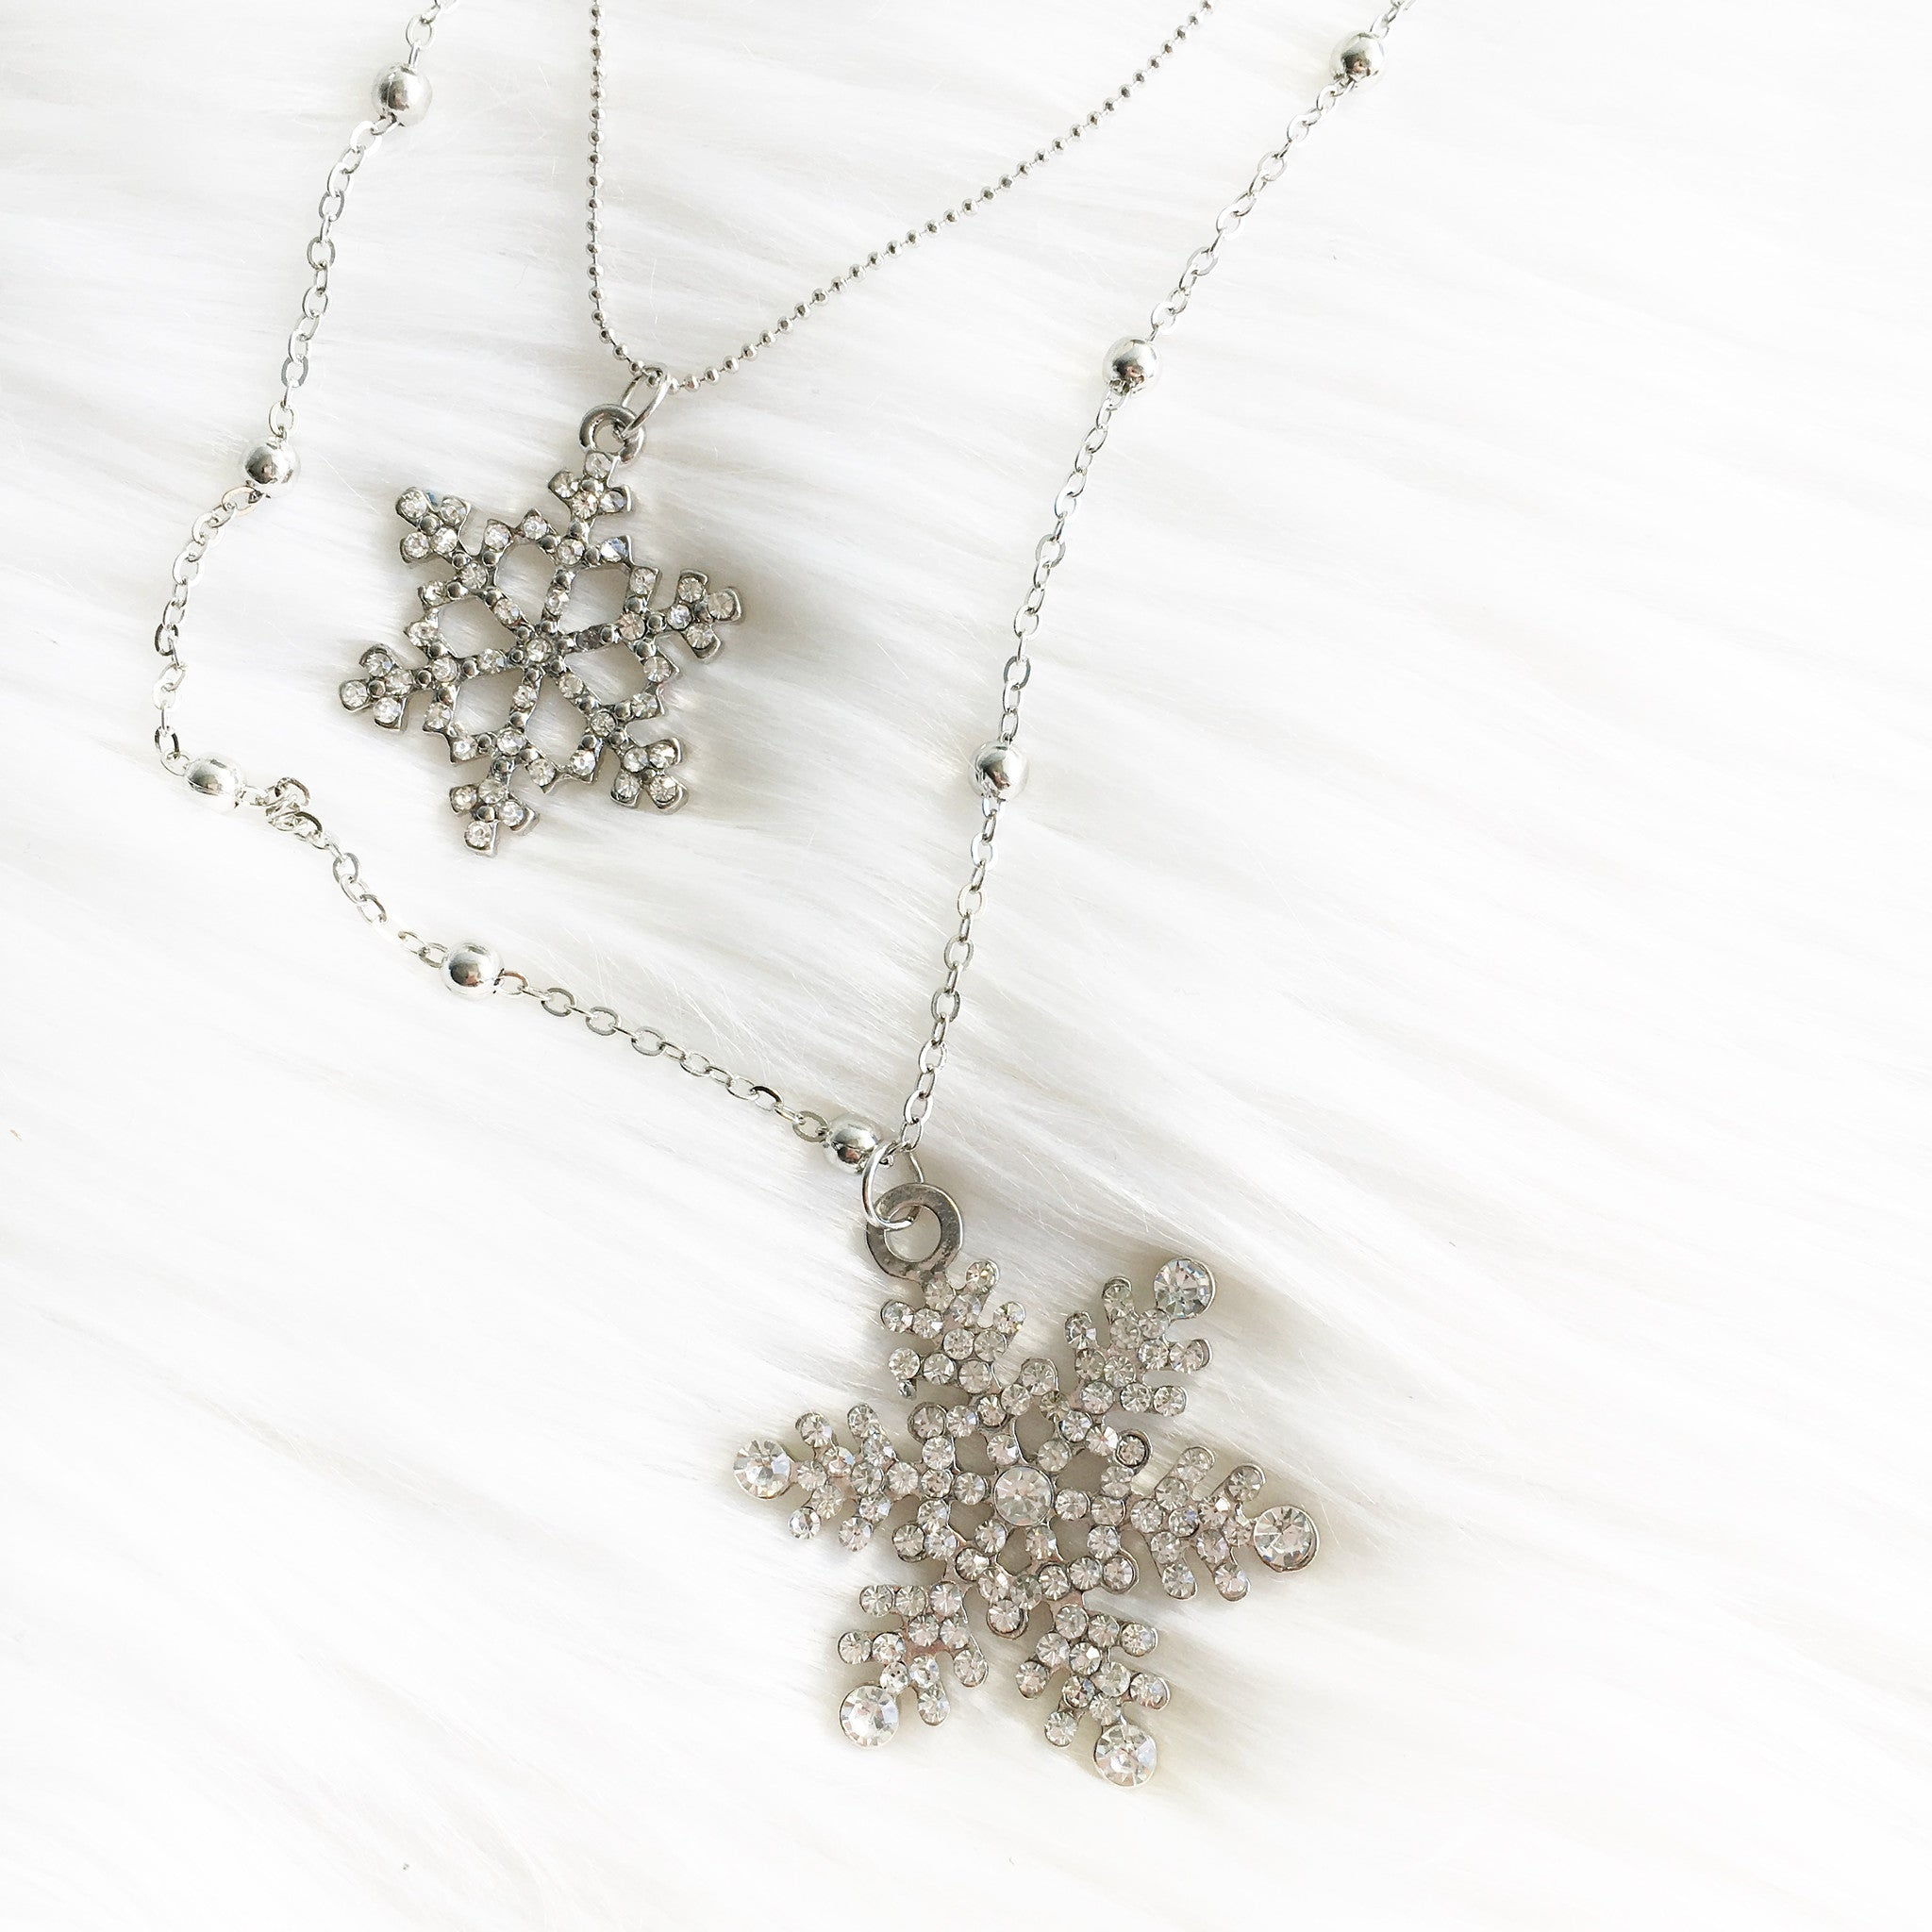 Odette Snowflakes Statement Necklace - Micha Store - 1